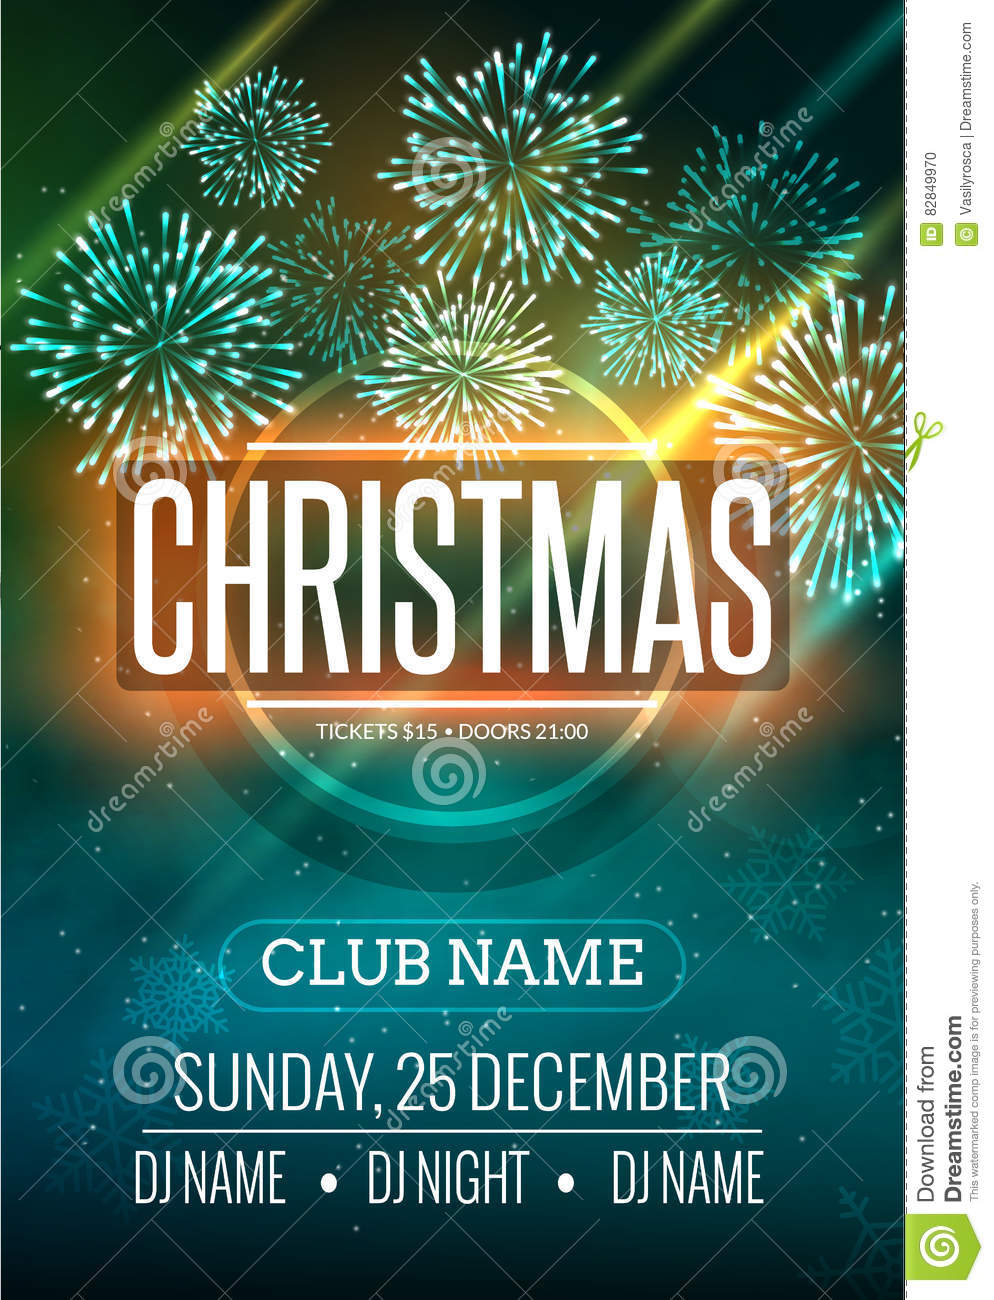 Download Christmas Party Poster Design With Fireworks Light. New Year Disco Flyer  Template. Stock